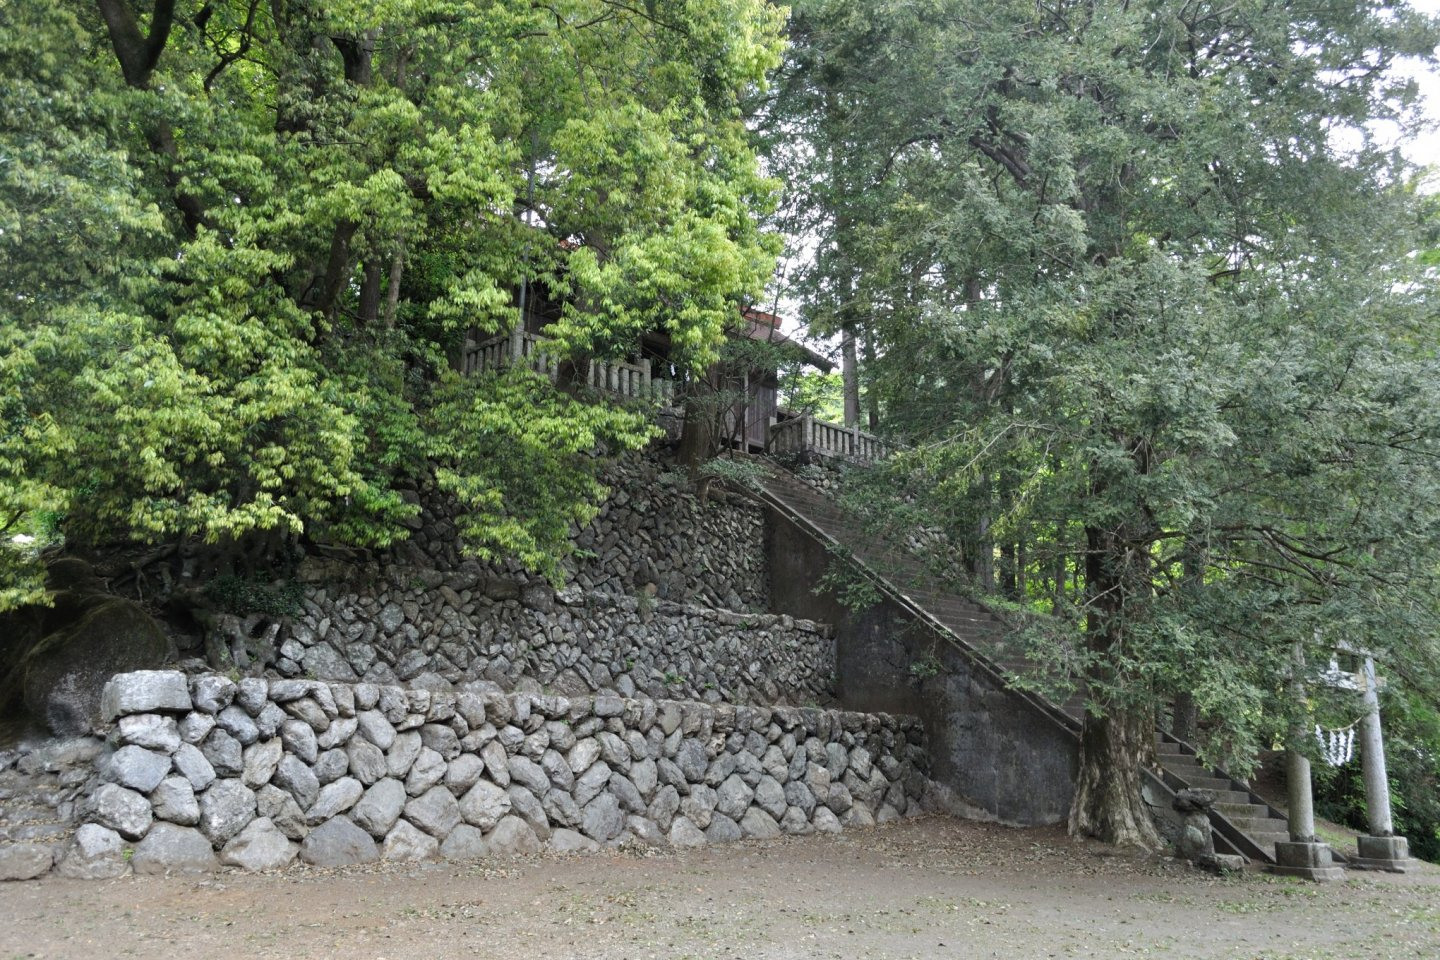 Ichinogo Shrine